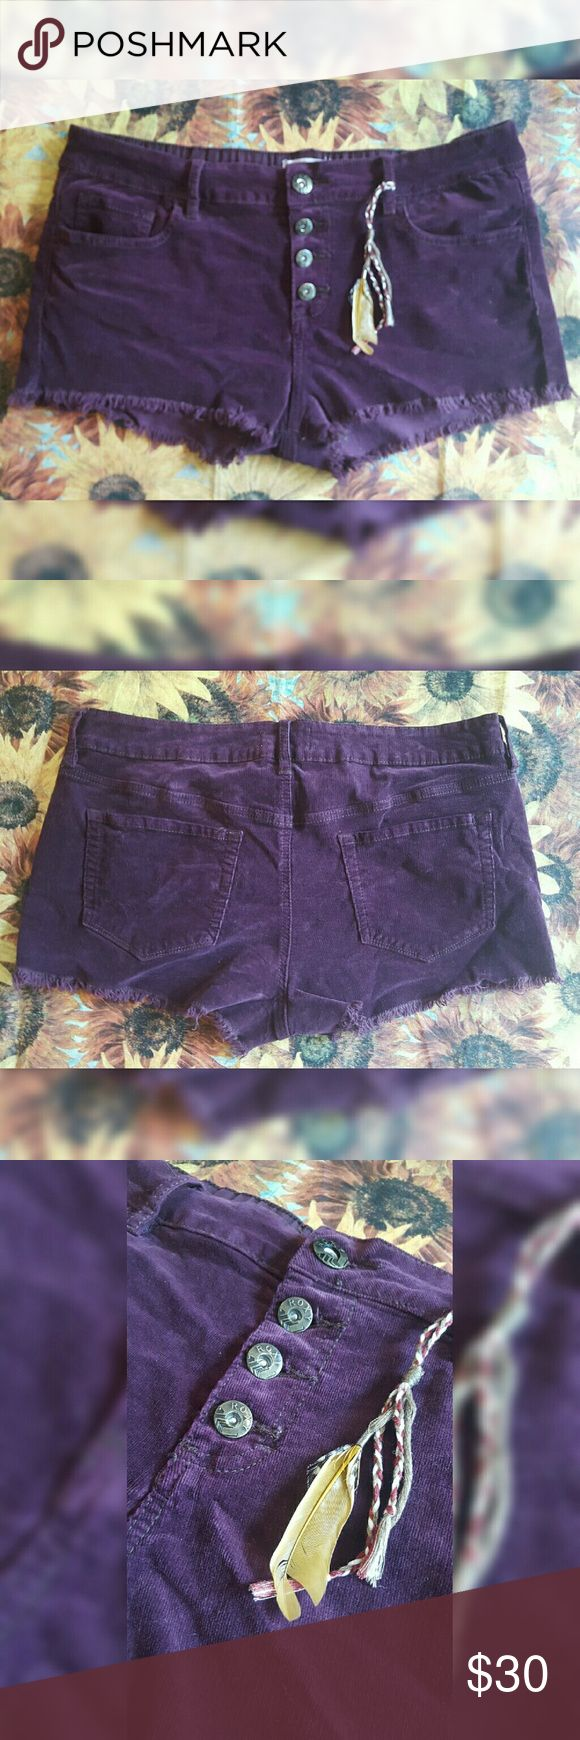 Roxy Burgundy Shorts With Feather Charm Well loved but good condition. THESE SHORTS ARE A BURGUNDY RED COLOR, NOT PURPLE. THE CAMERA CHANGED THE COLORING. Roxy Shorts